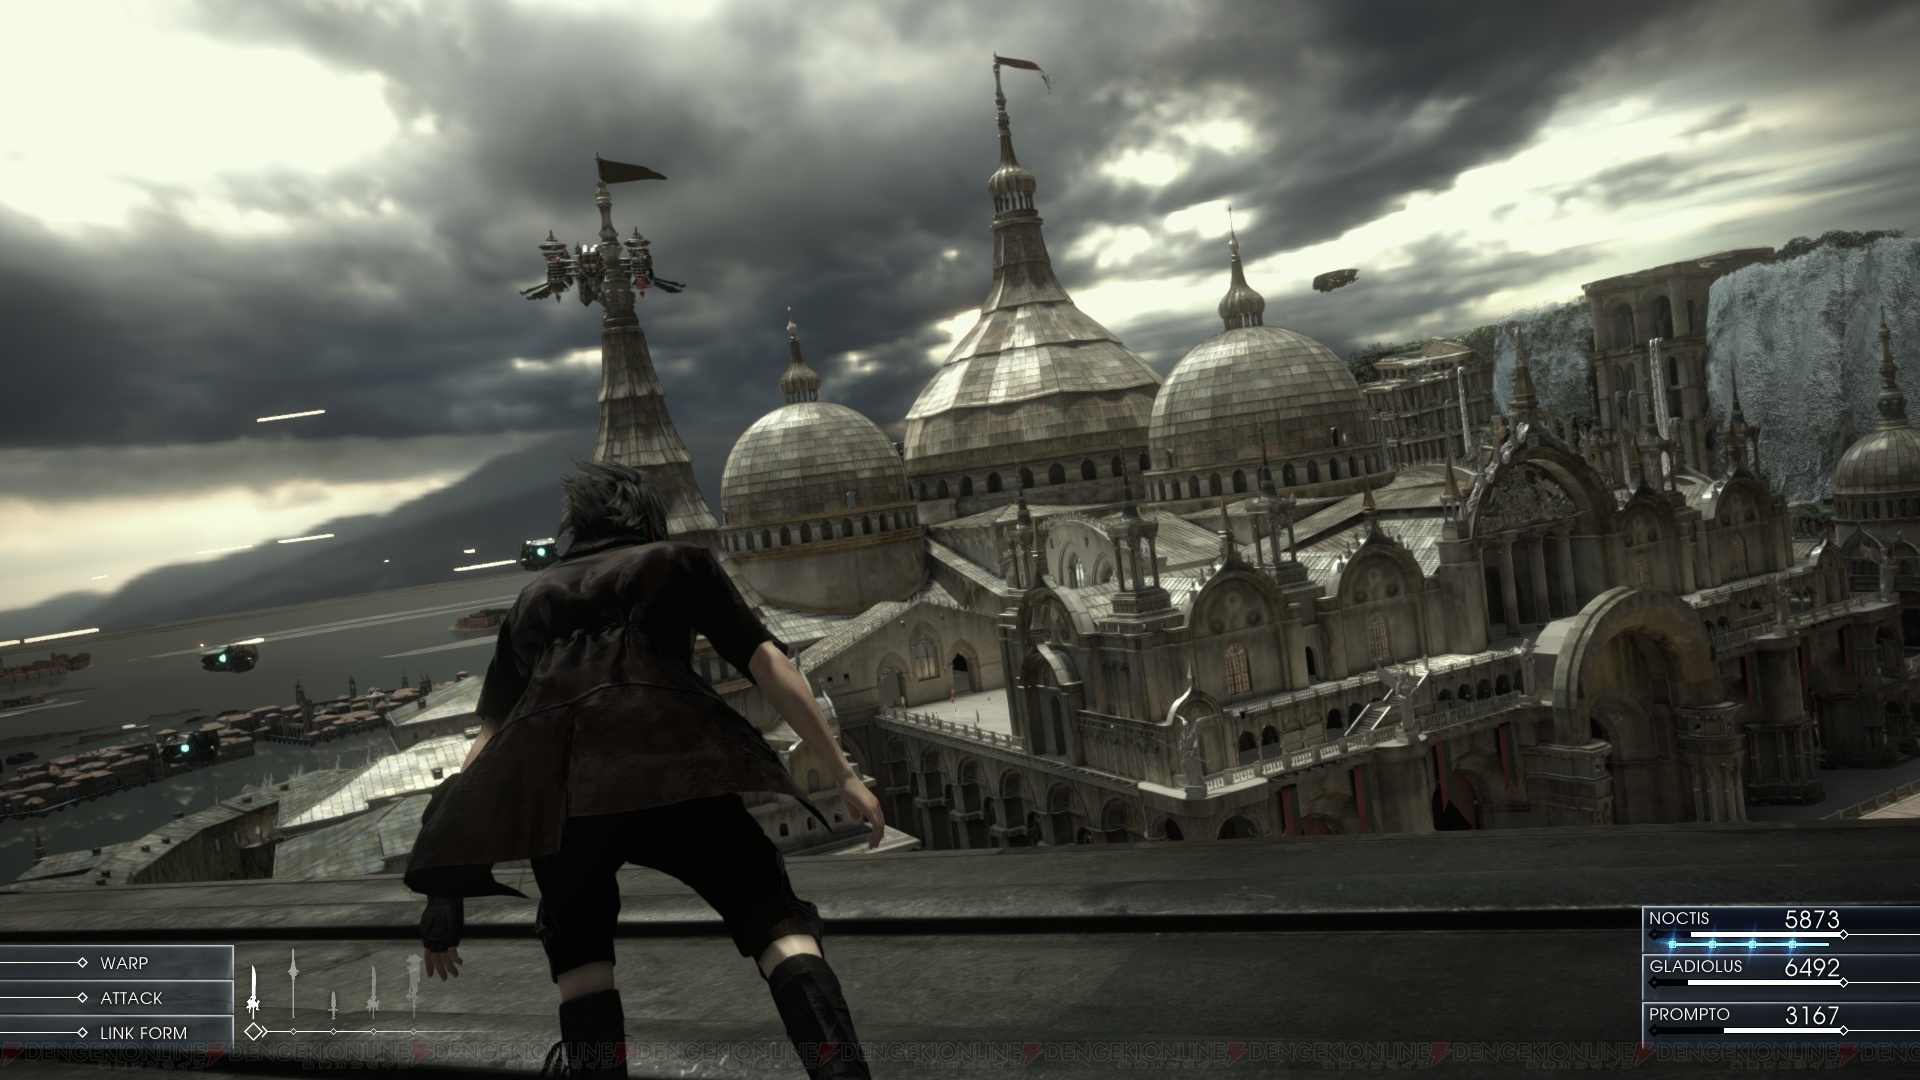 Final Fantasy XV (due in late 2014) might be the first next-gen exclusive title worth upgrading for.